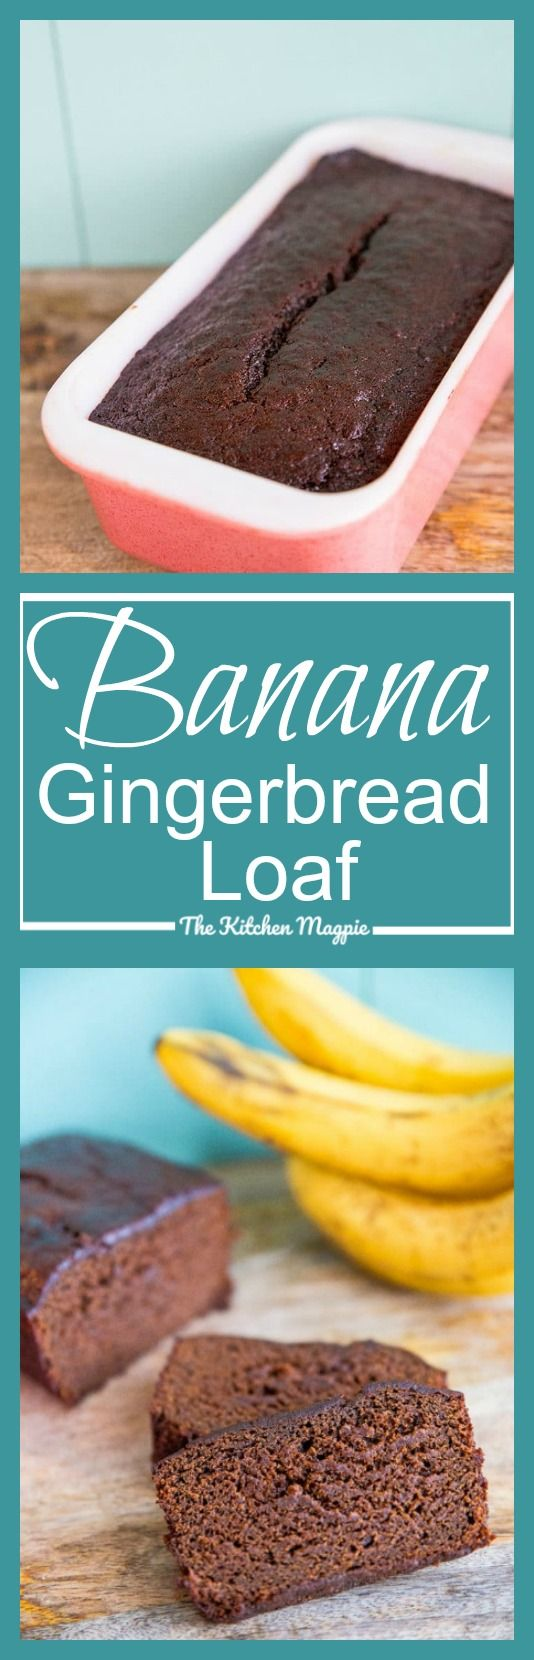 Banana Gingerbread Loaf - The Kitchen Magpie